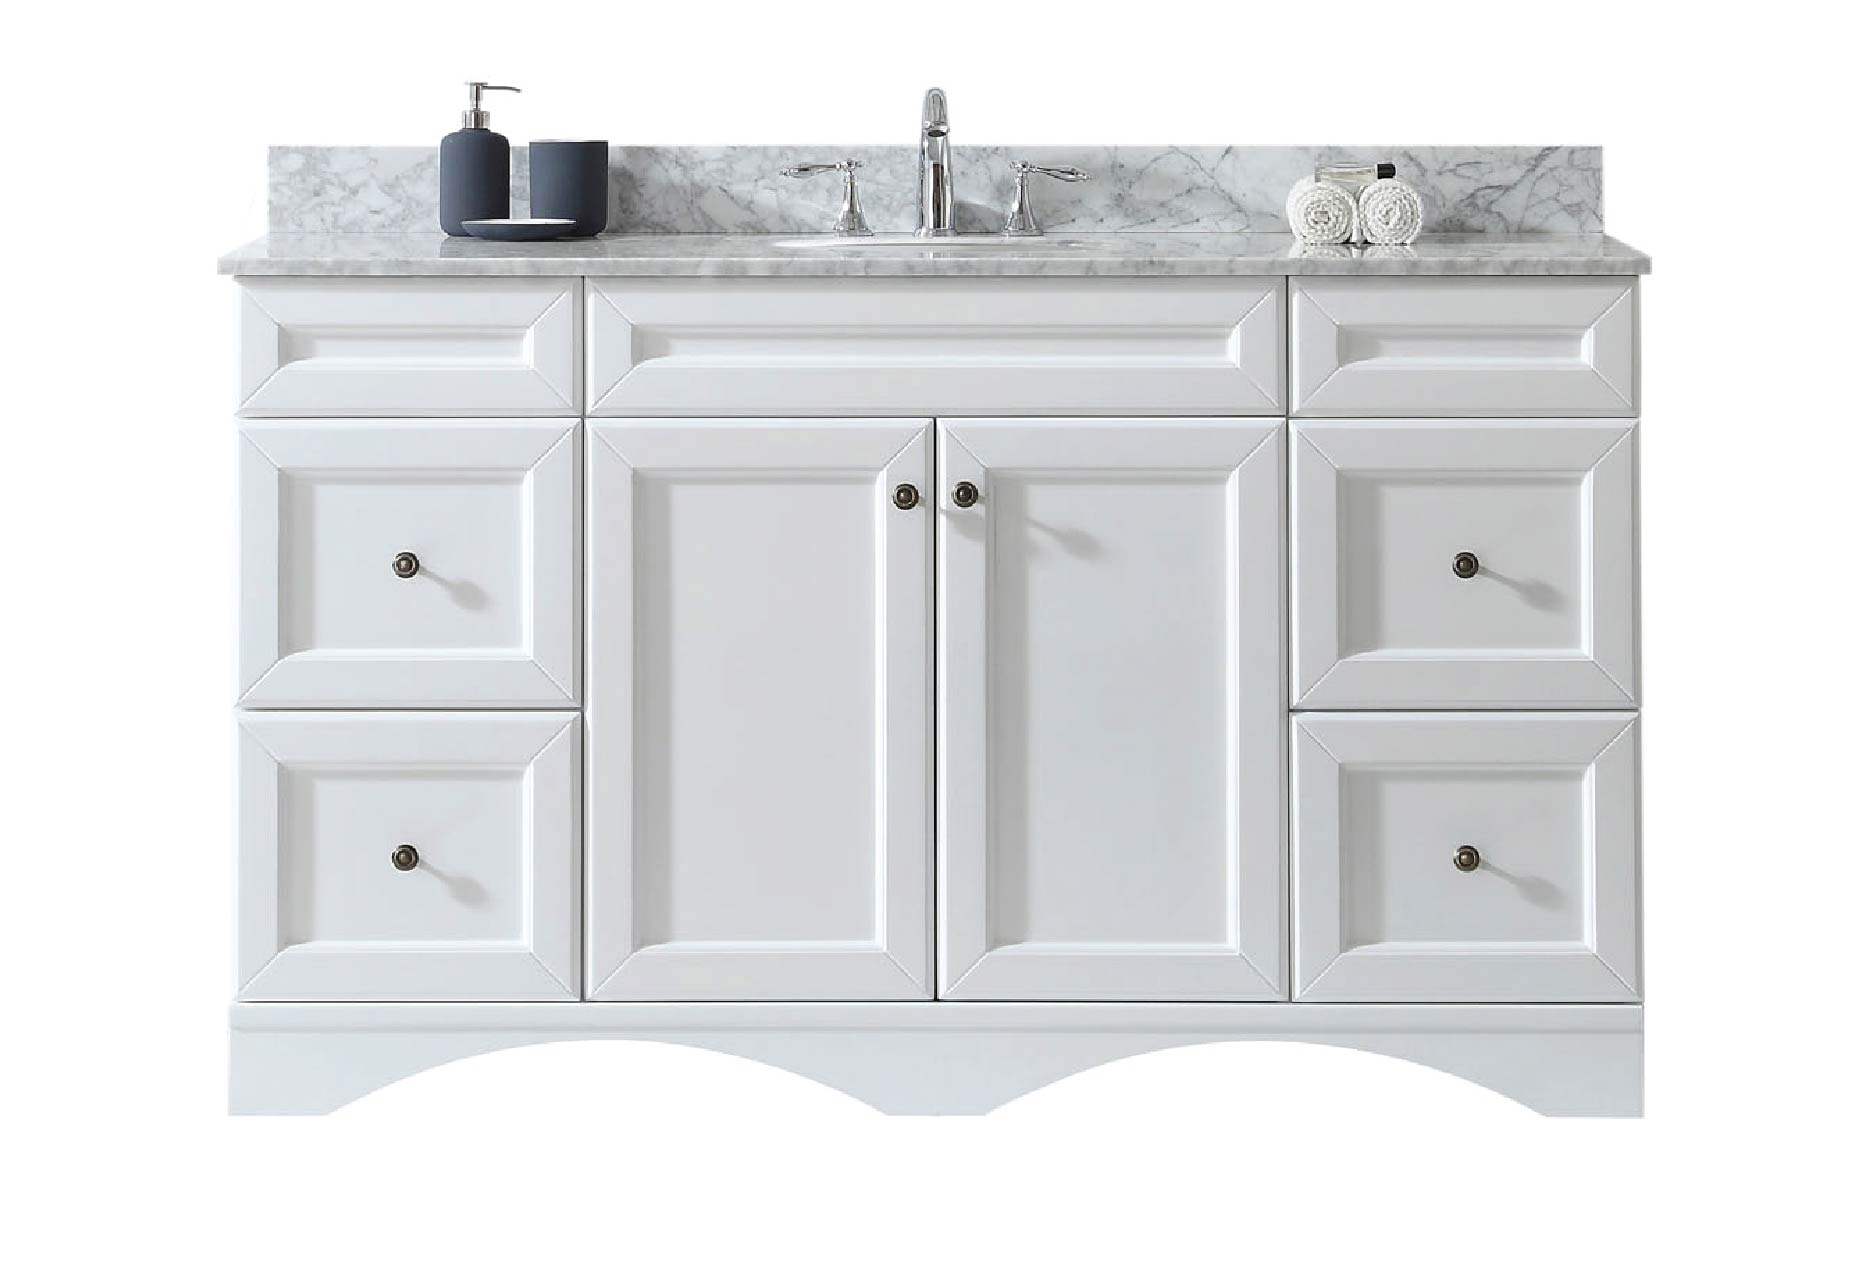 Vanities 60 to 69 inches wide